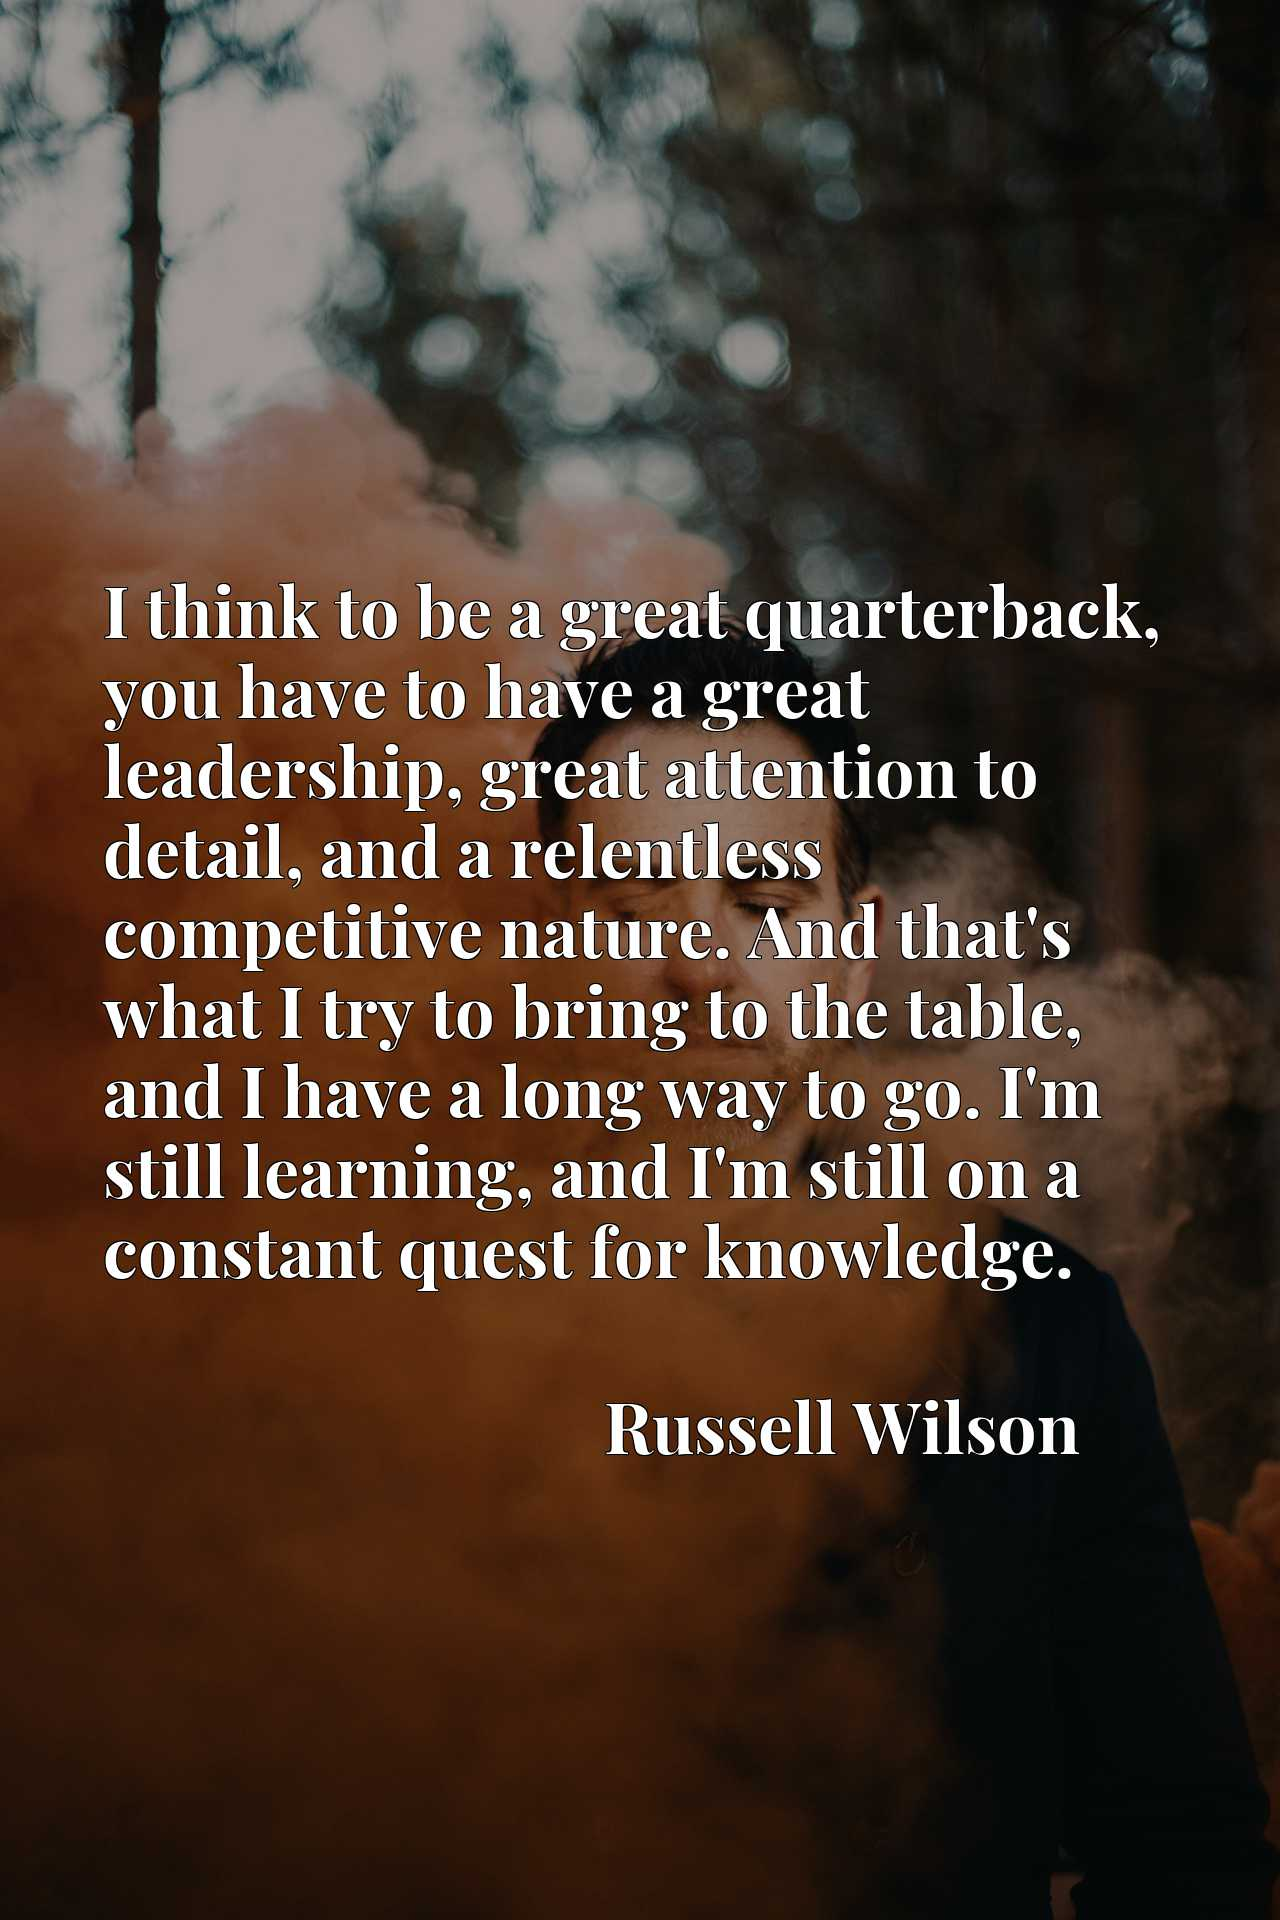 Quote Picture :I think to be a great quarterback, you have to have a great leadership, great attention to detail, and a relentless competitive nature. And that's what I try to bring to the table, and I have a long way to go. I'm still learning, and I'm still on a constant quest for knowledge.